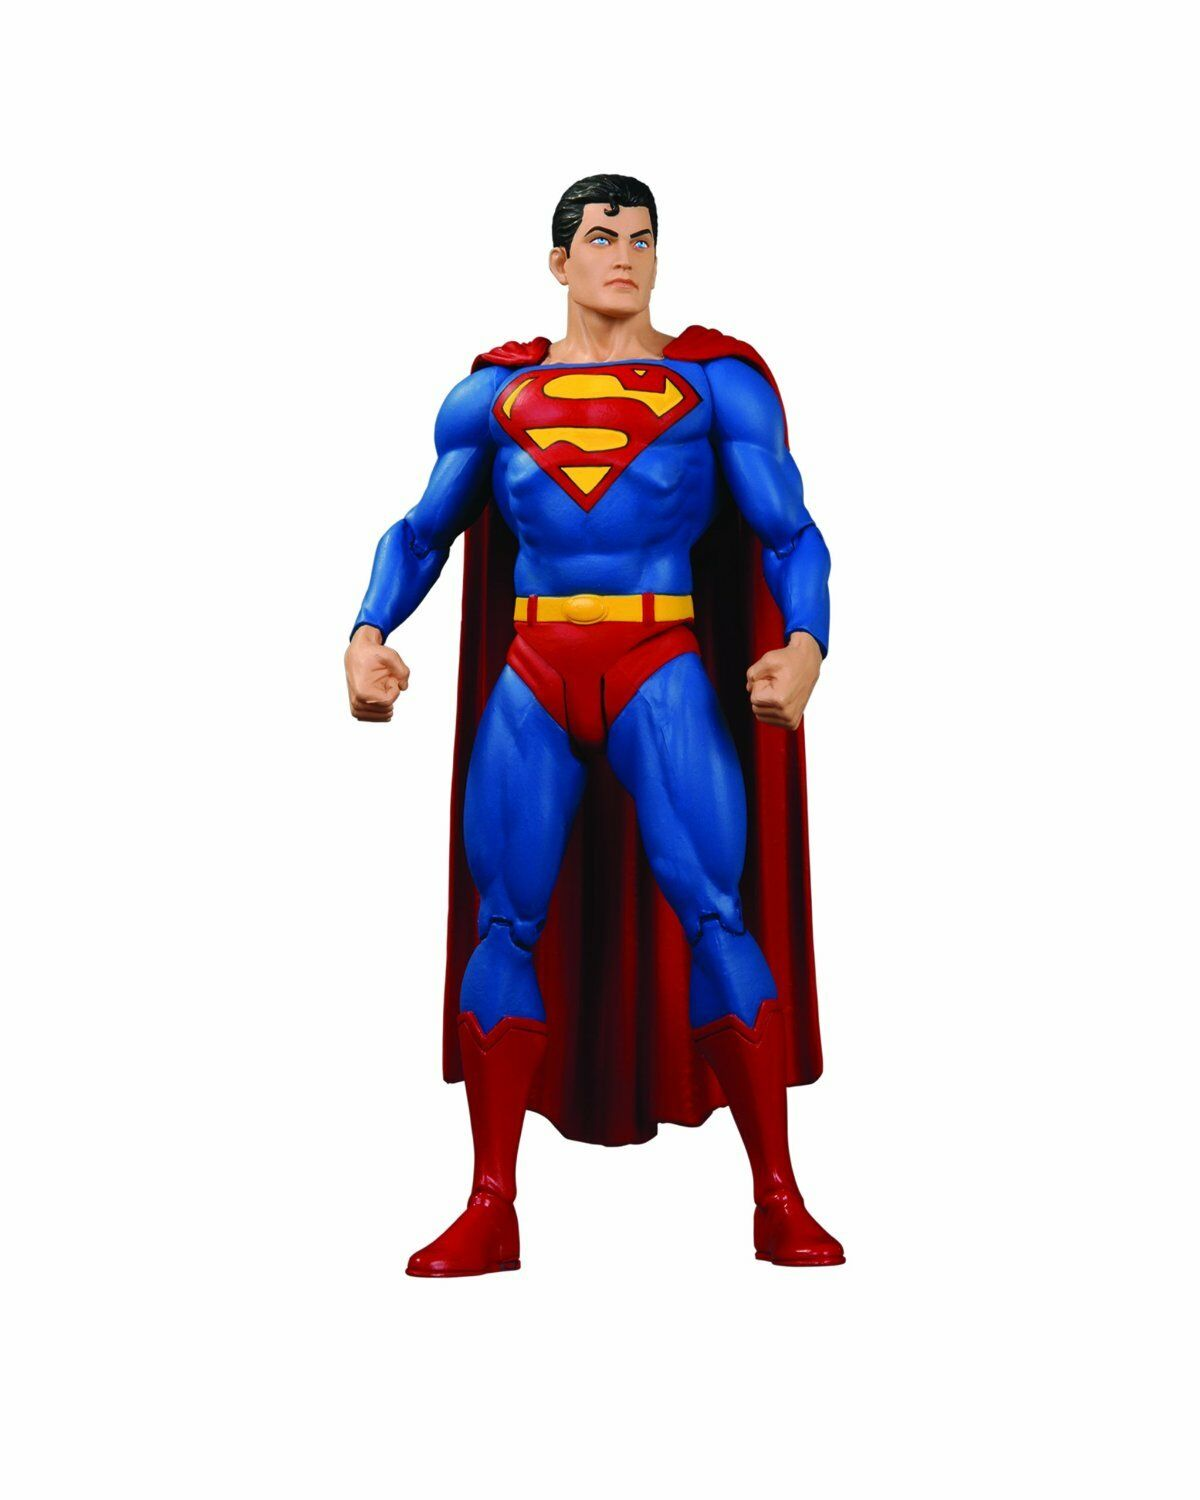 Jla classic icons superman in action - figur dc direkte spielzeug